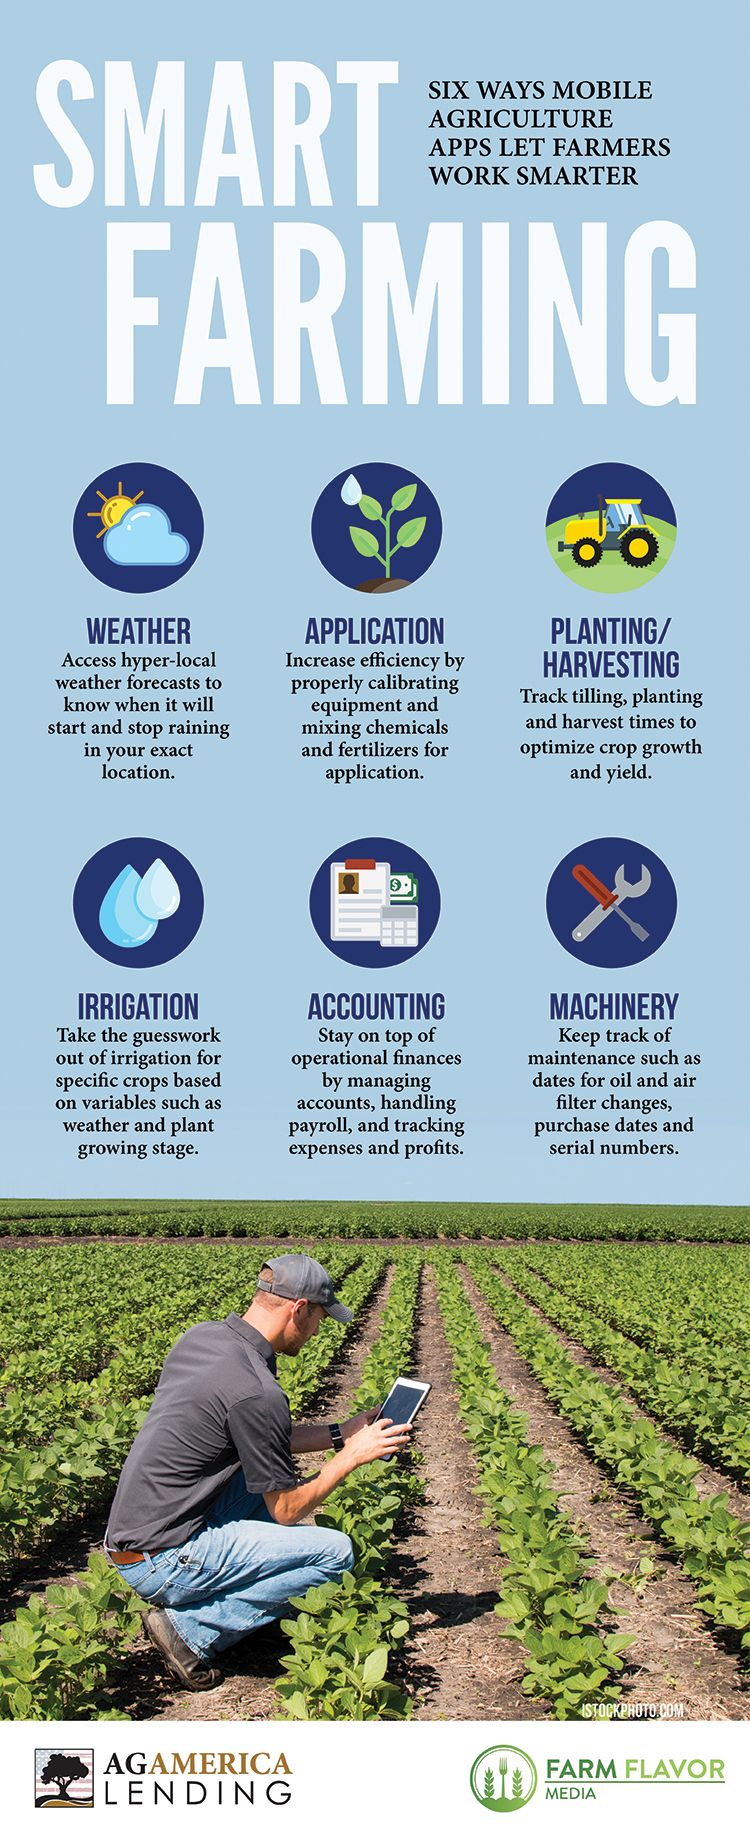 There's an app for that. See how farmers use mobile apps to farm smarter.